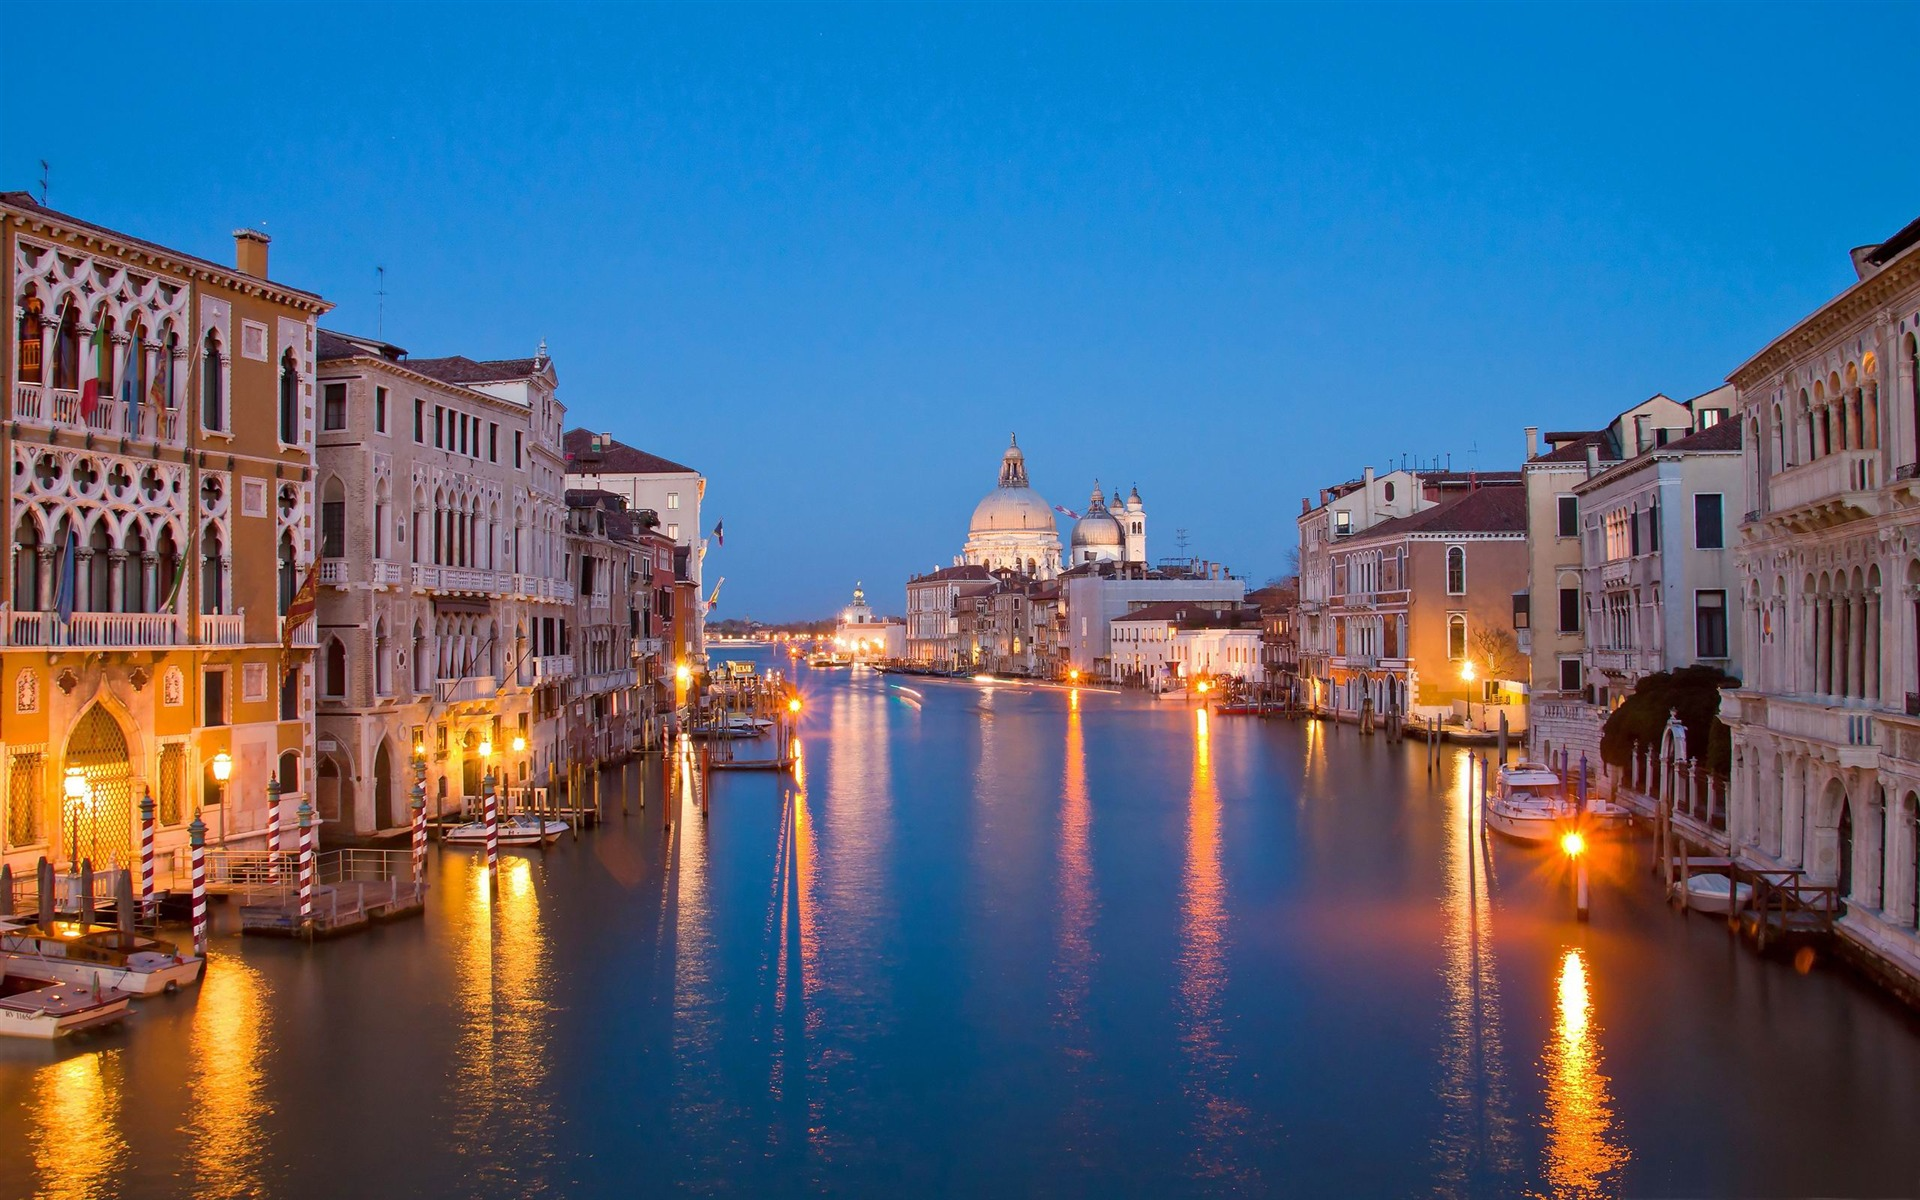 Venice At Night City Landscape Wallpaper Preview